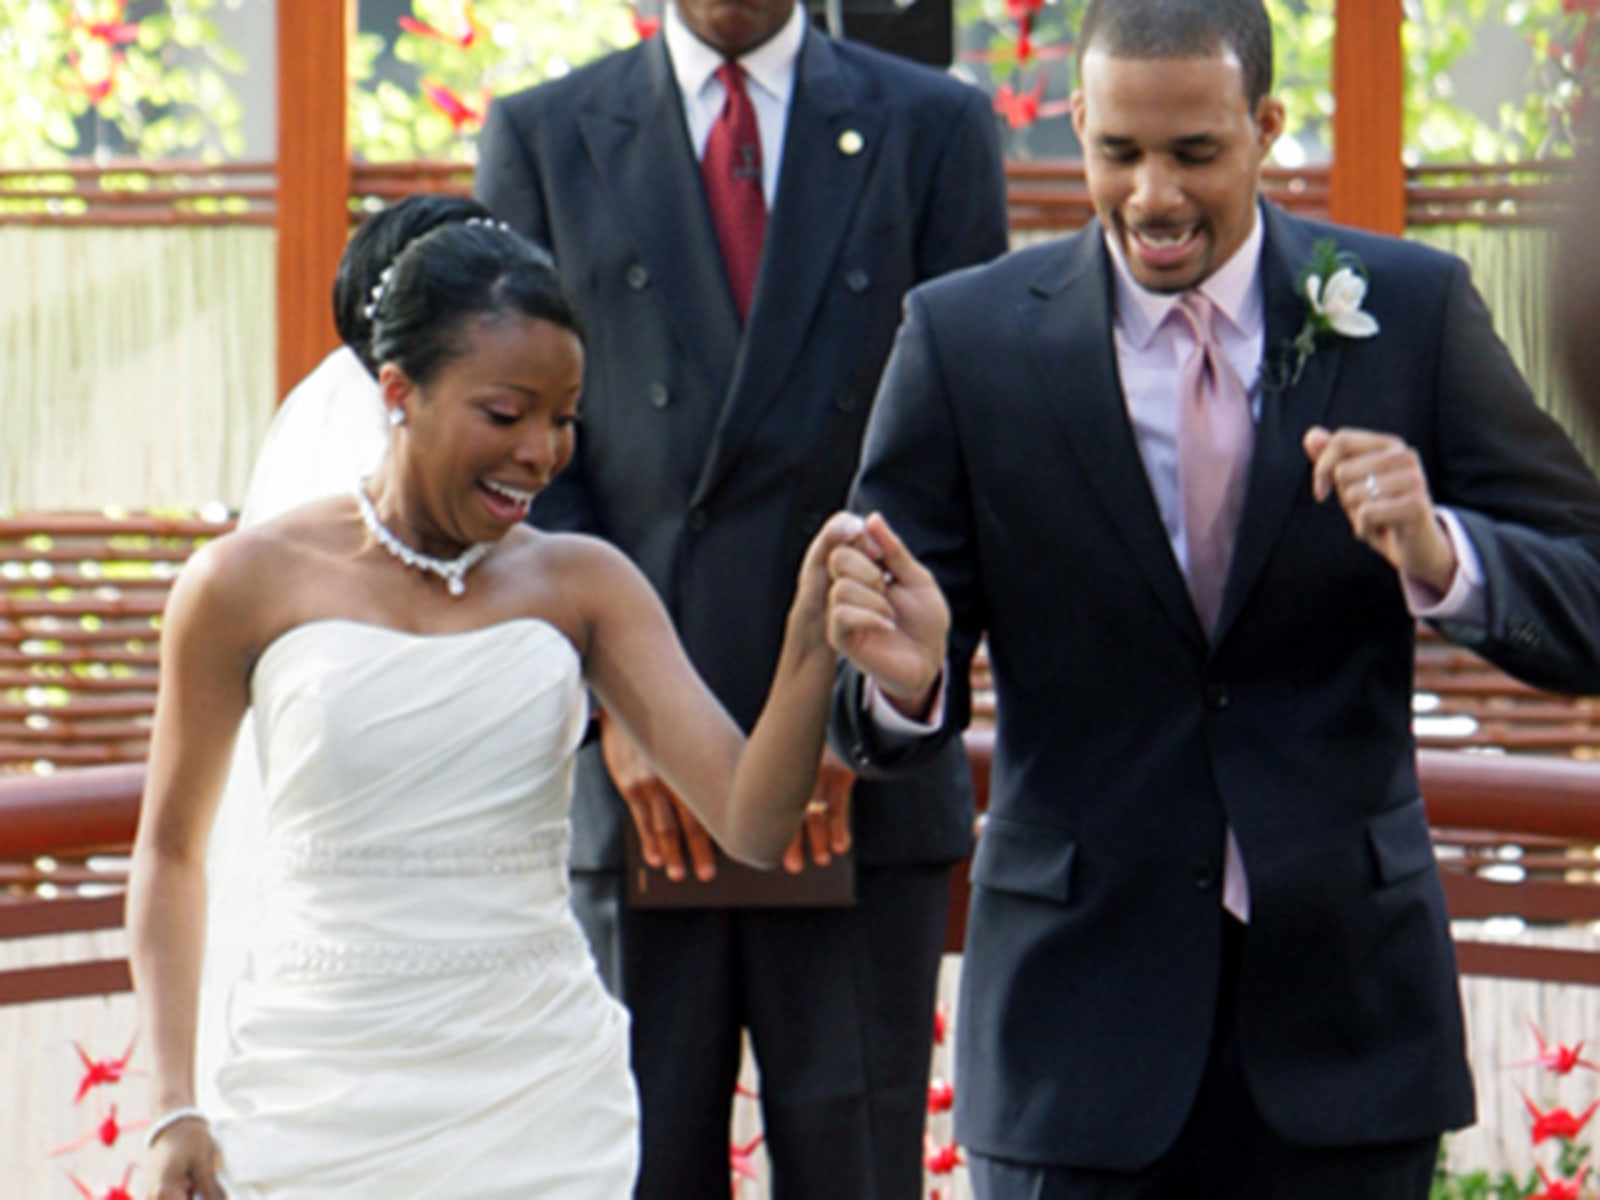 Image: LaDonna Bradford and Darnell Sugg on the set of the Today show wedding